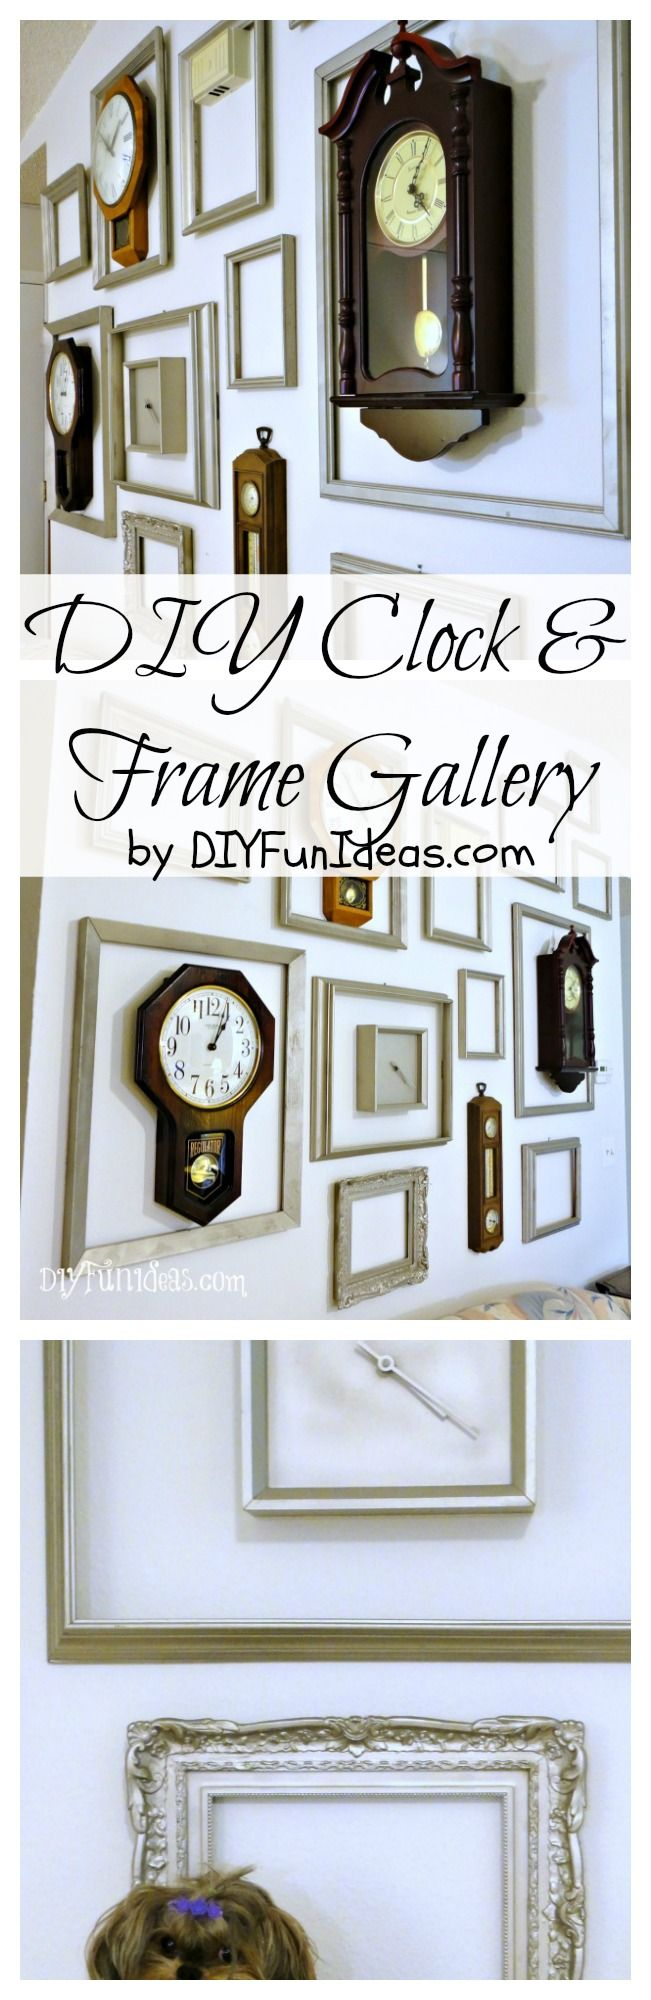 25 Great Ideas About Wall Of Clocks On Pinterest